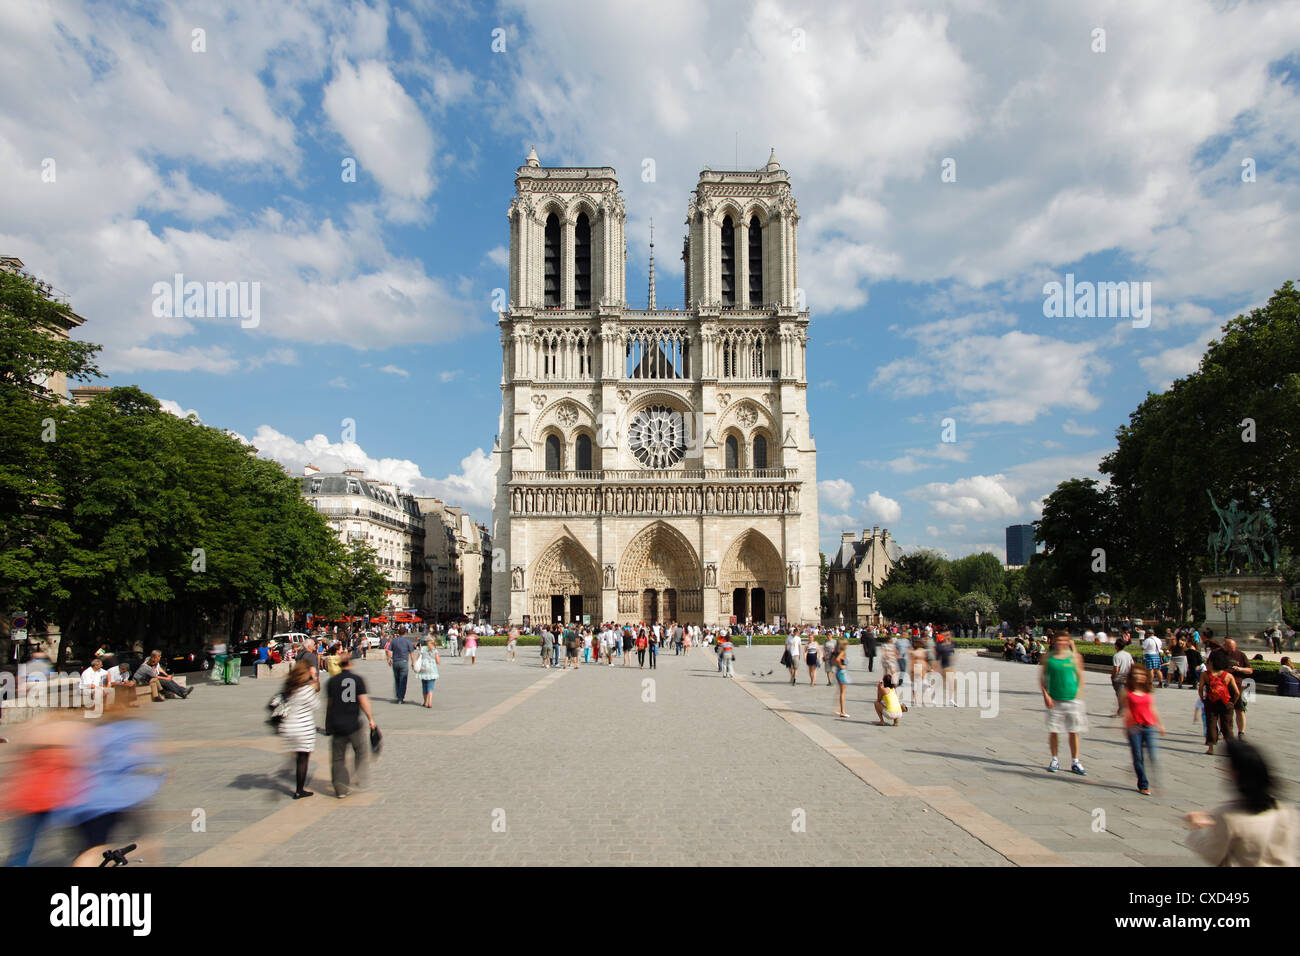 Tourists outside Notre Dame Cathedral, Paris, France, Europe - Stock Image